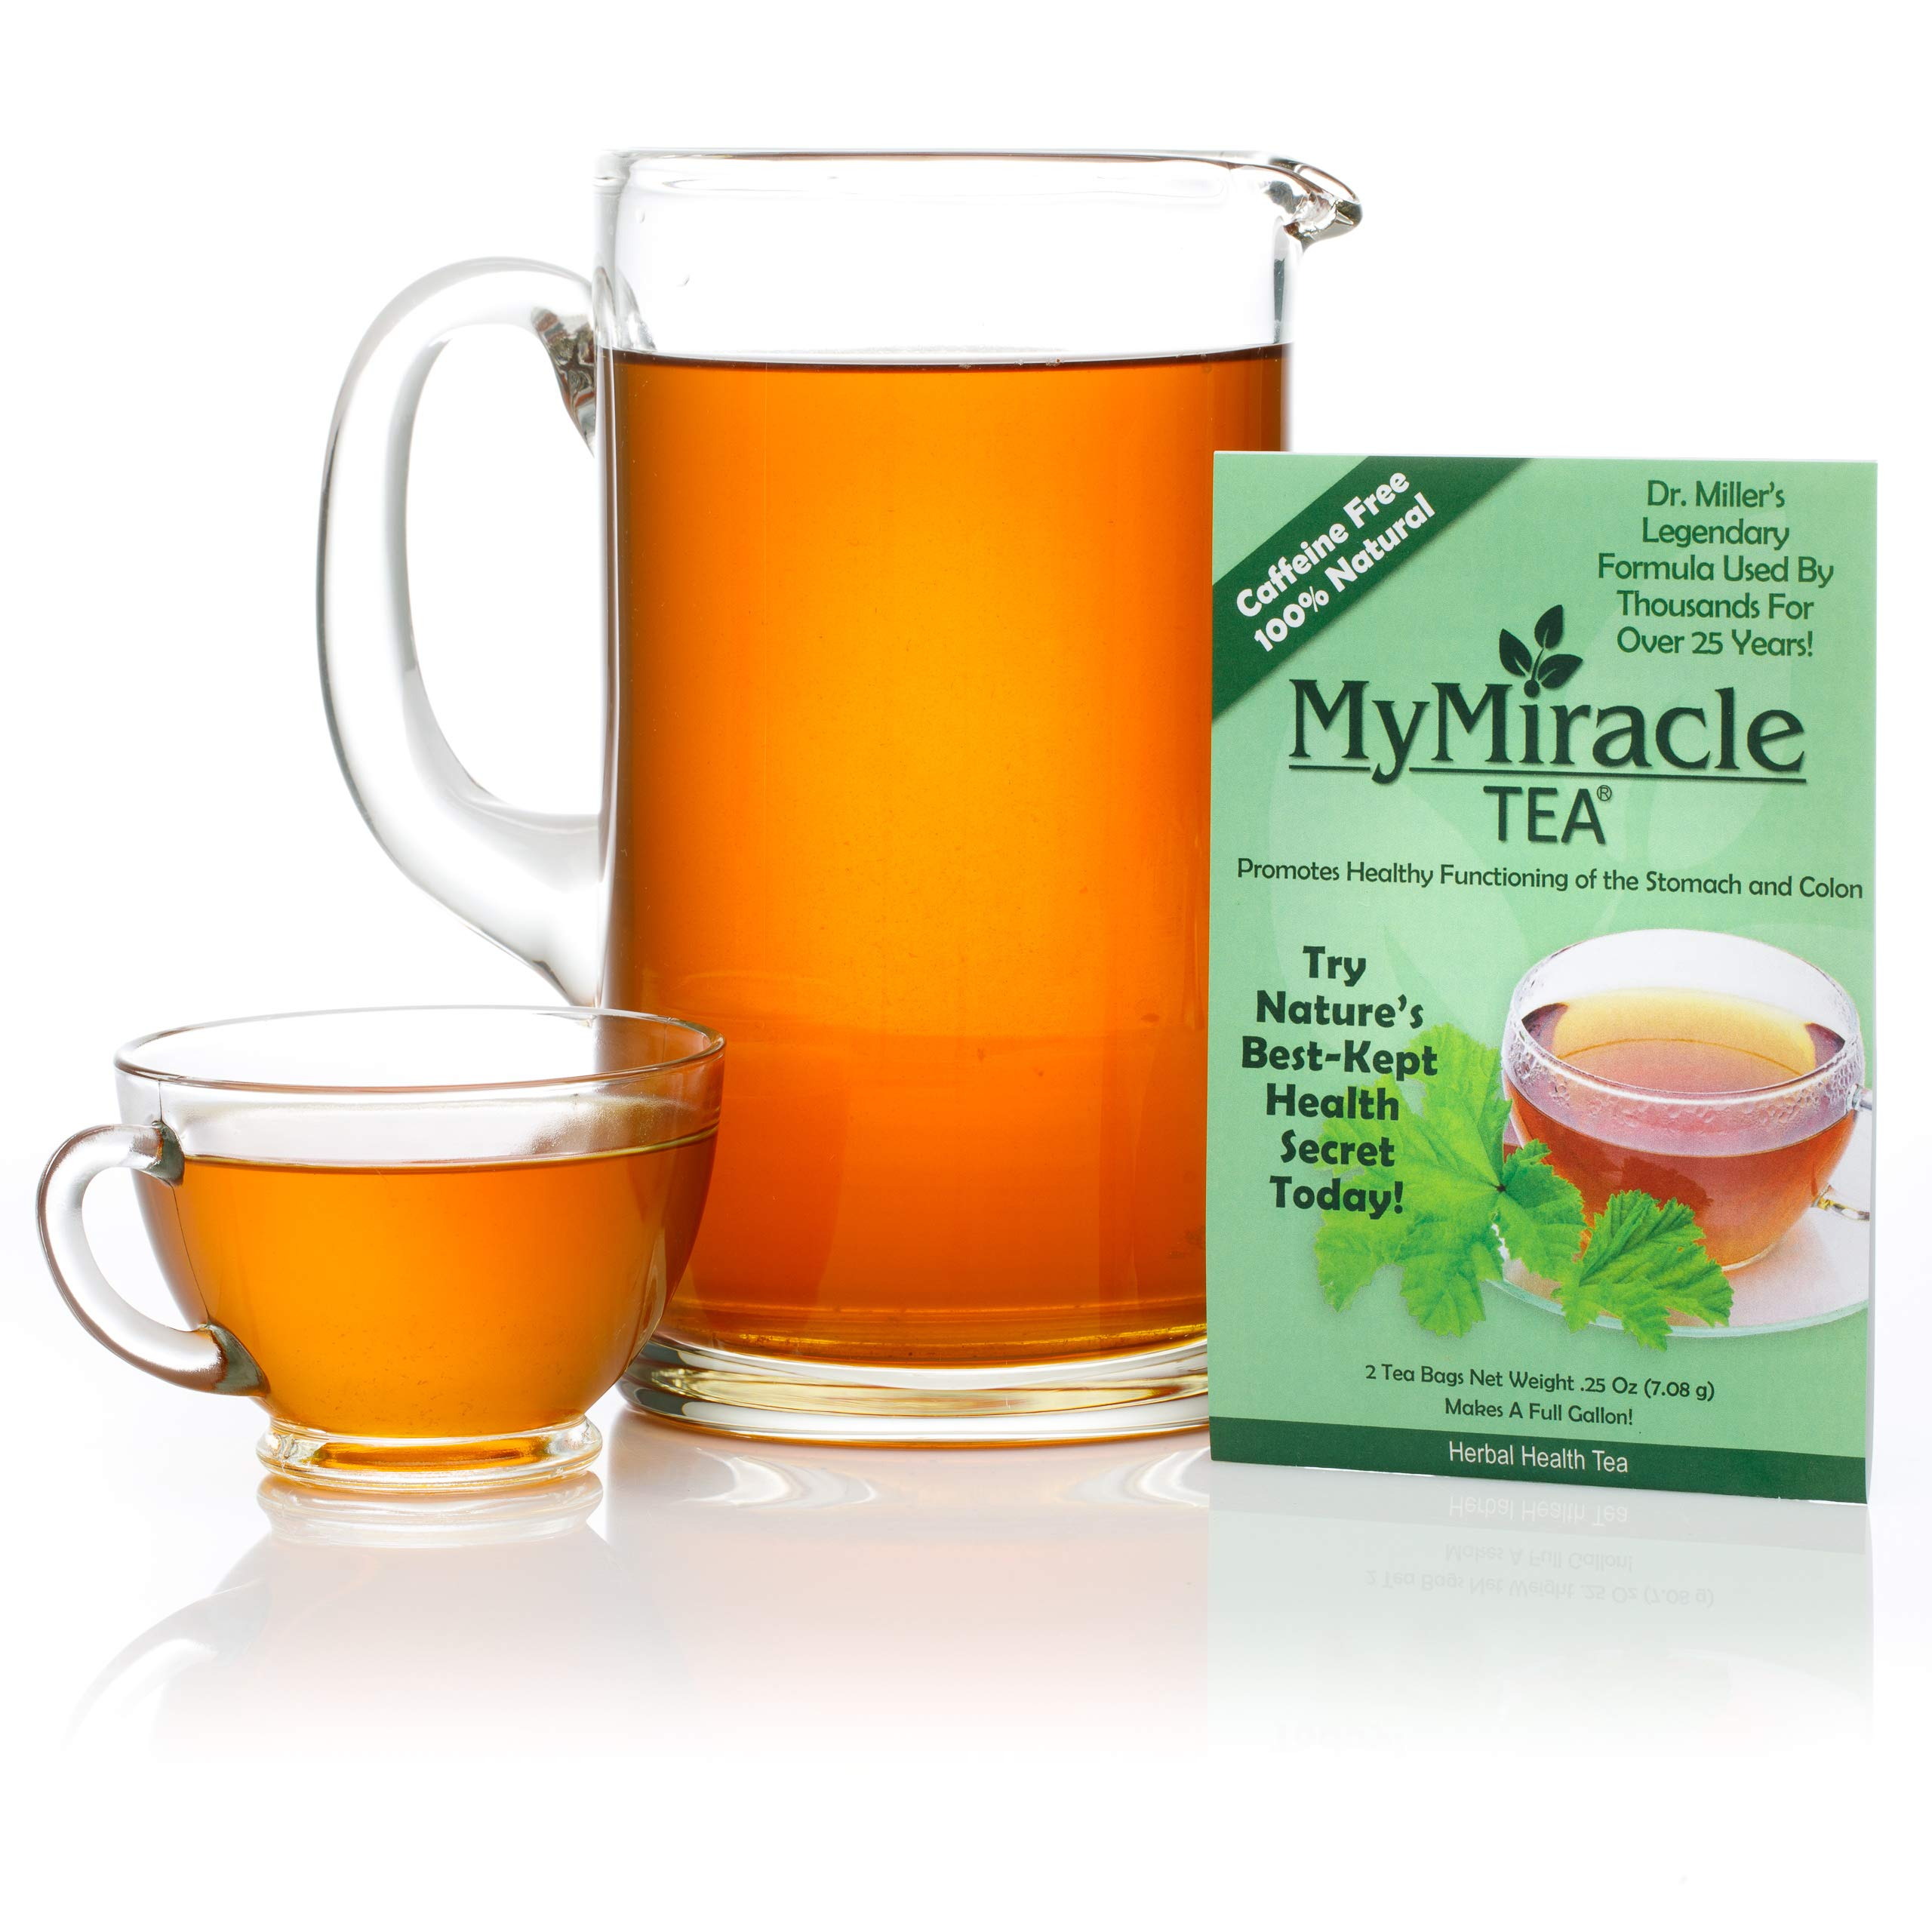 My Miracle Tea - Colon Cleanse, Constipation Relief, and All-Natural Detox Tea - 1 Month Supply (Makes 4 Gallons) by My Miracle Tea